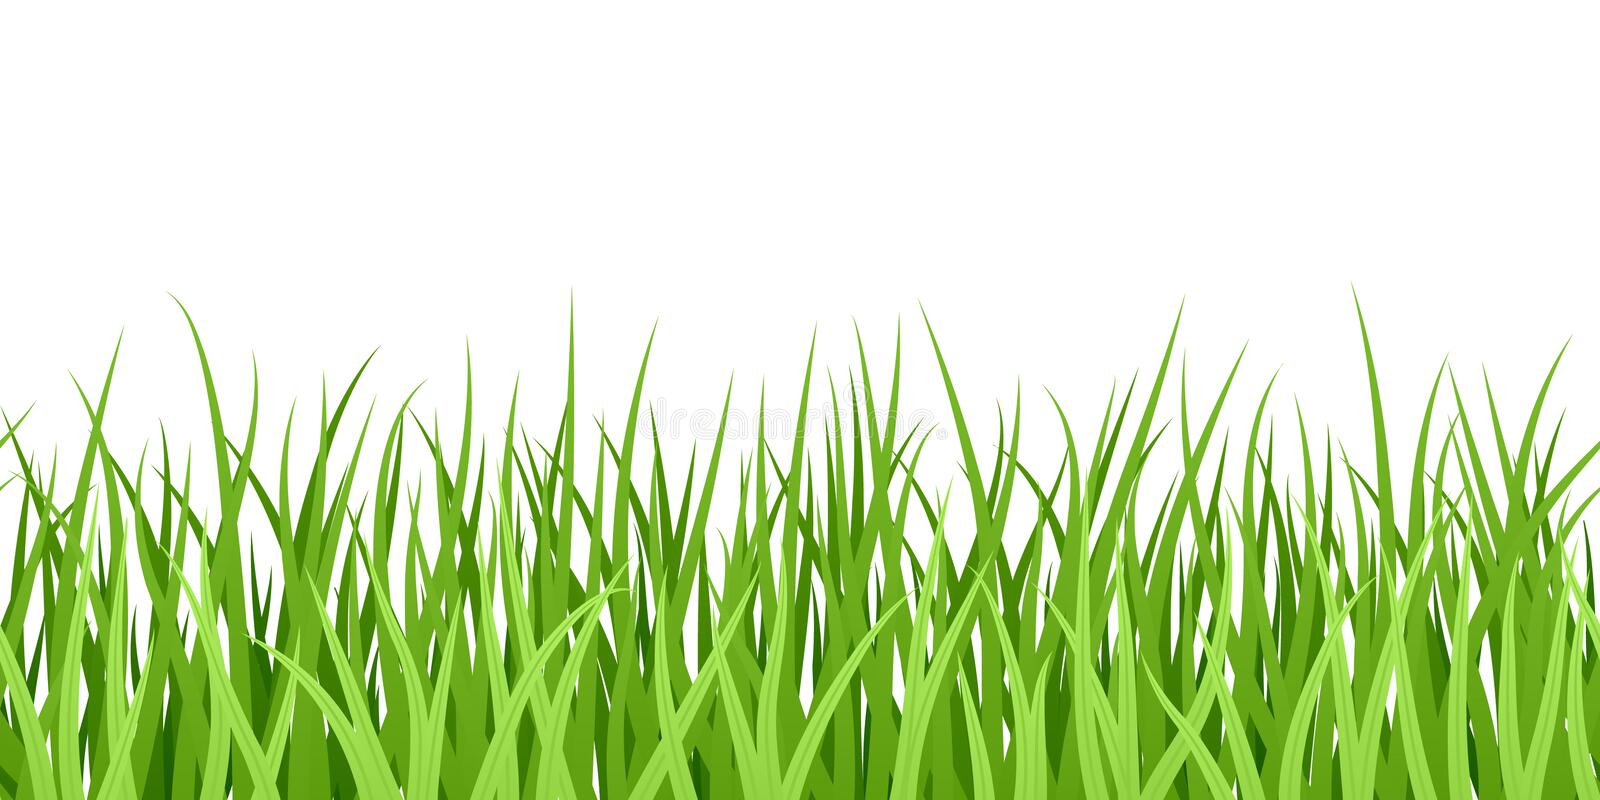 Green Grass. Seamless Illustration. Stock Photography